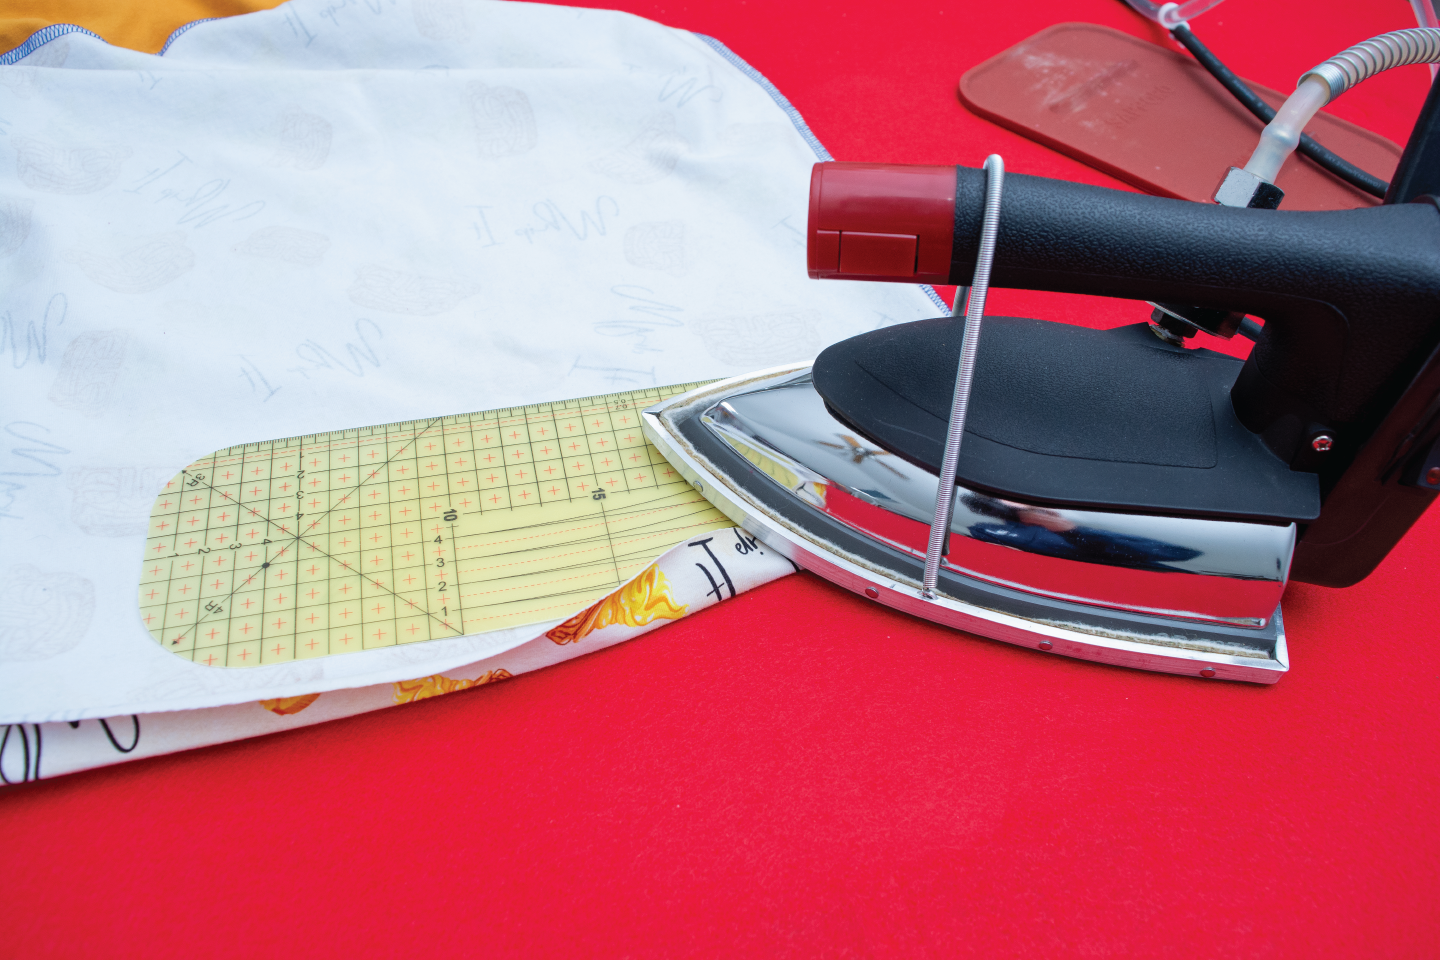 hot iron ruler being used to hem a dress with an iron